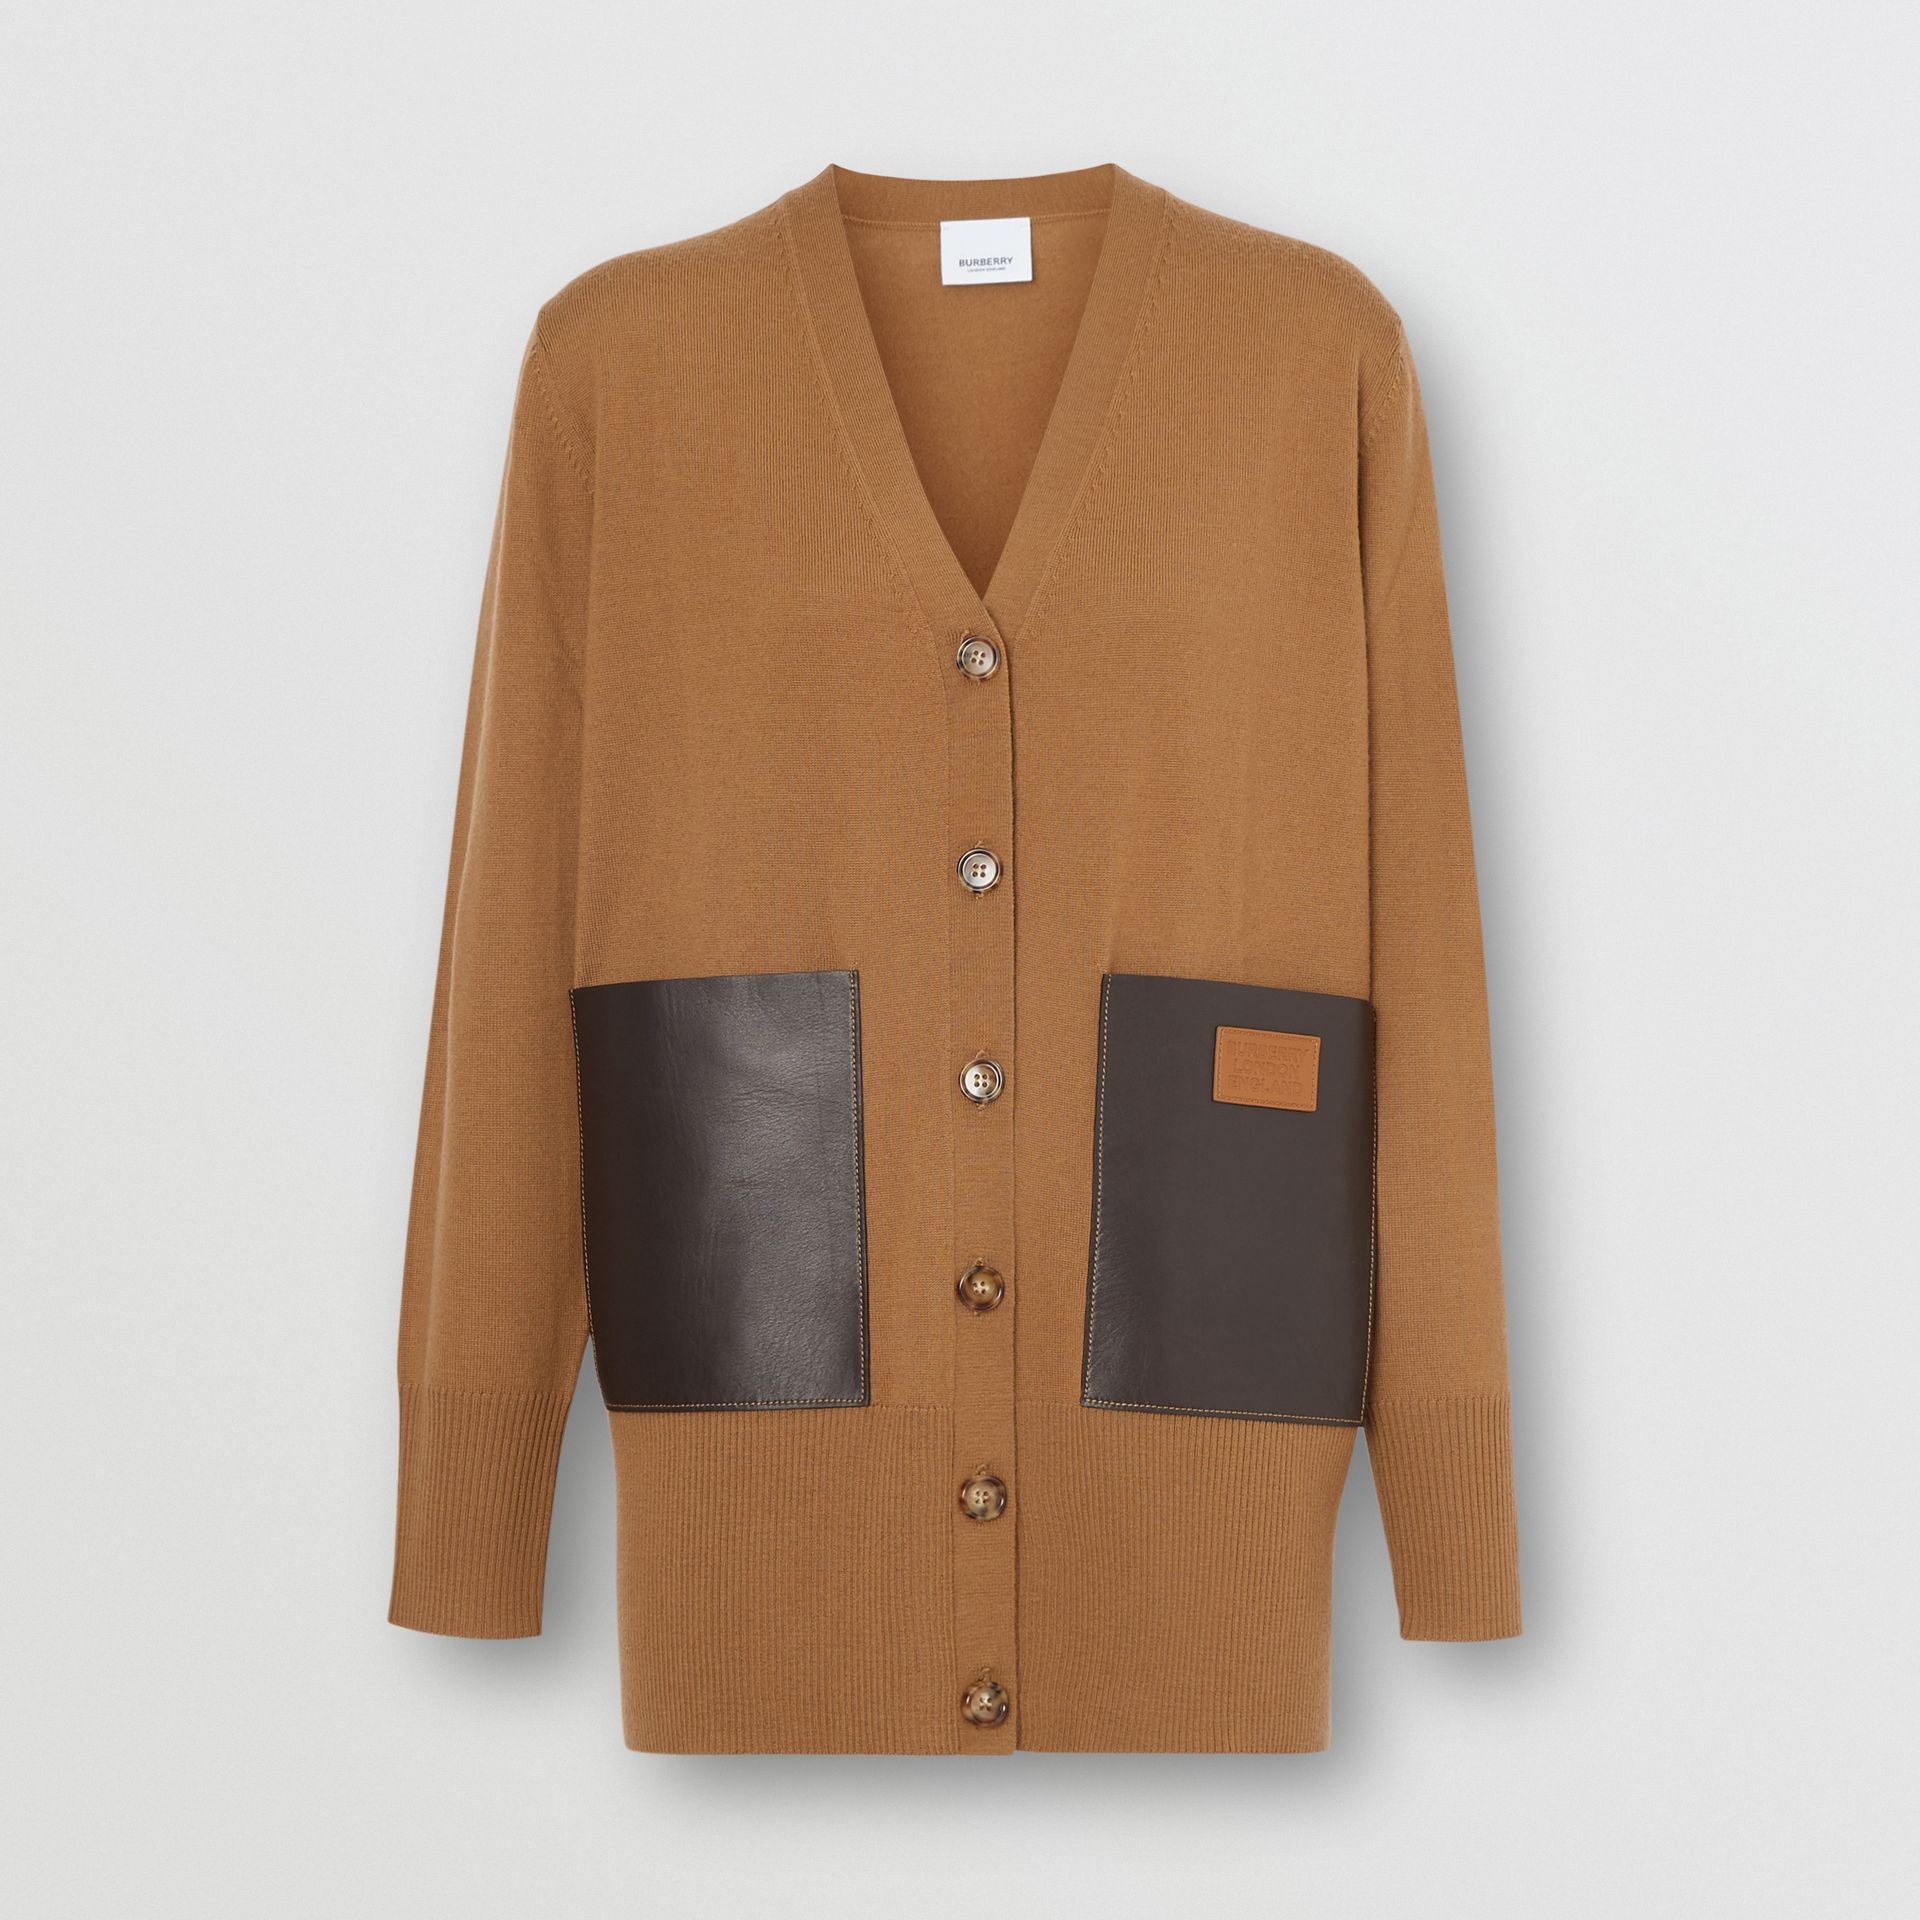 Lambskin Pocket Merino Wool Cardigan in Warm Walnut - Women | Burberry Hong Kong S.A.R - gallery image 2